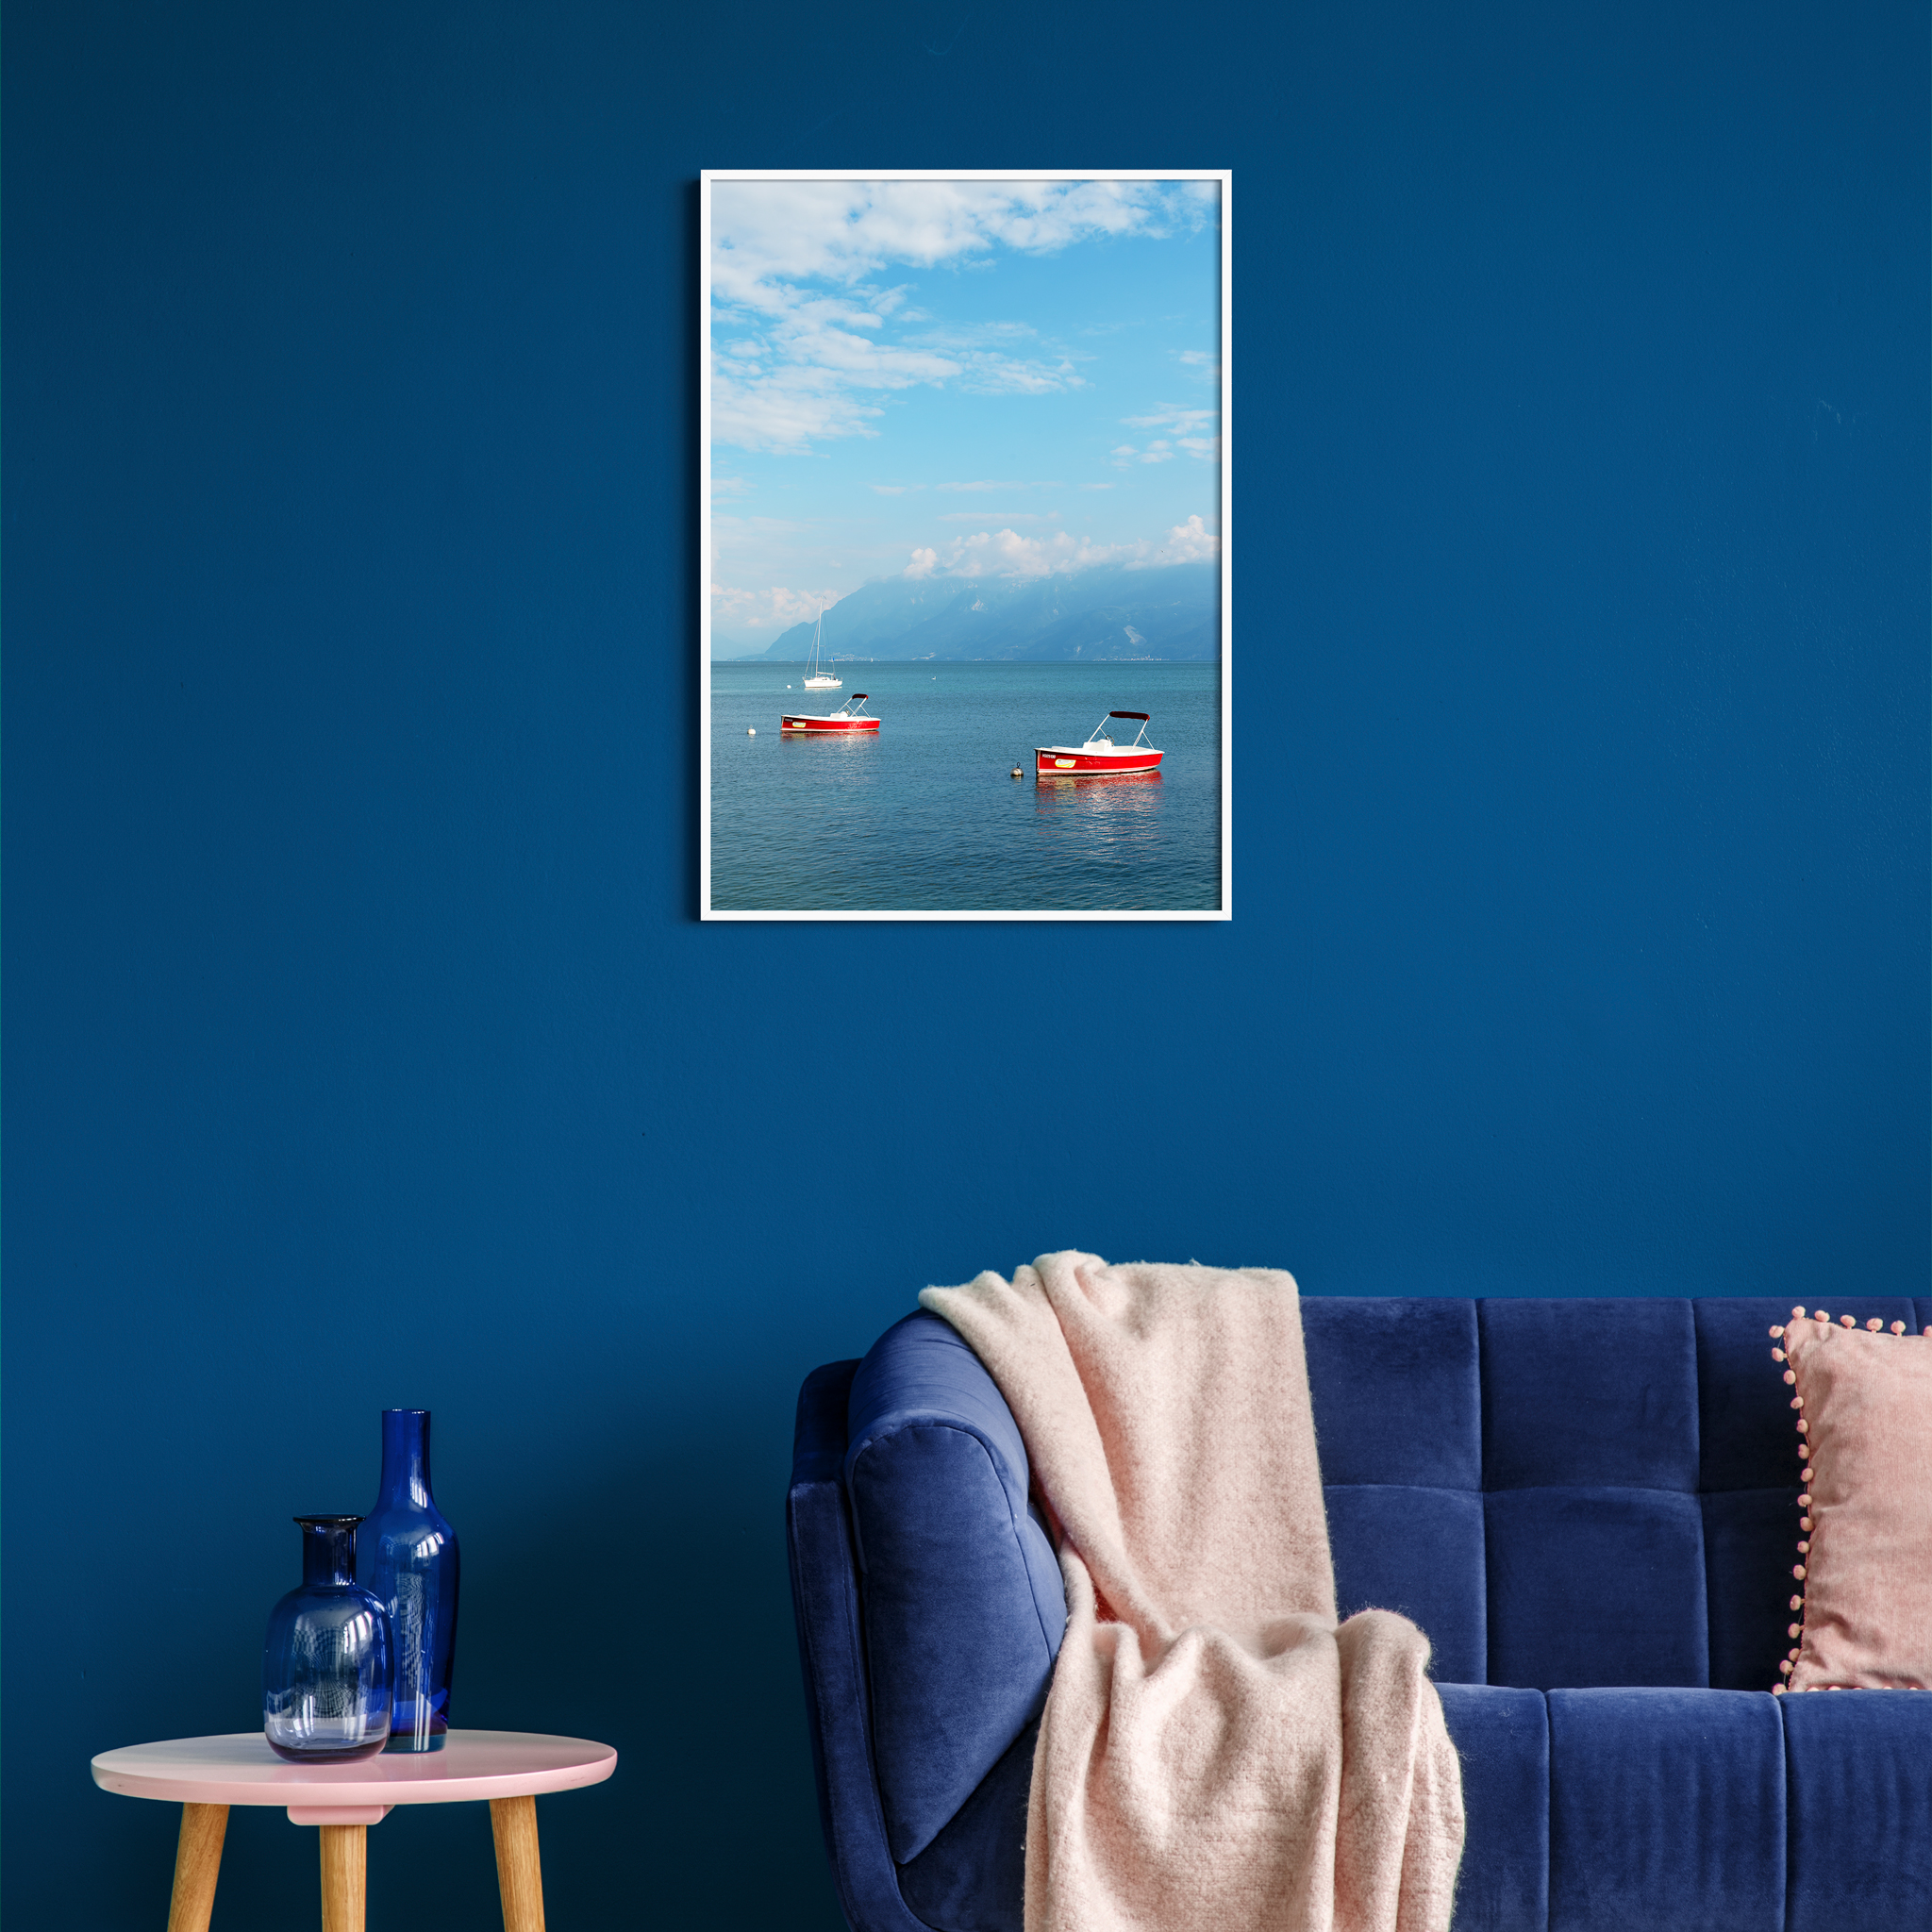 Boats on the Lake Leman - color print without border in white frame on the blue colored wall